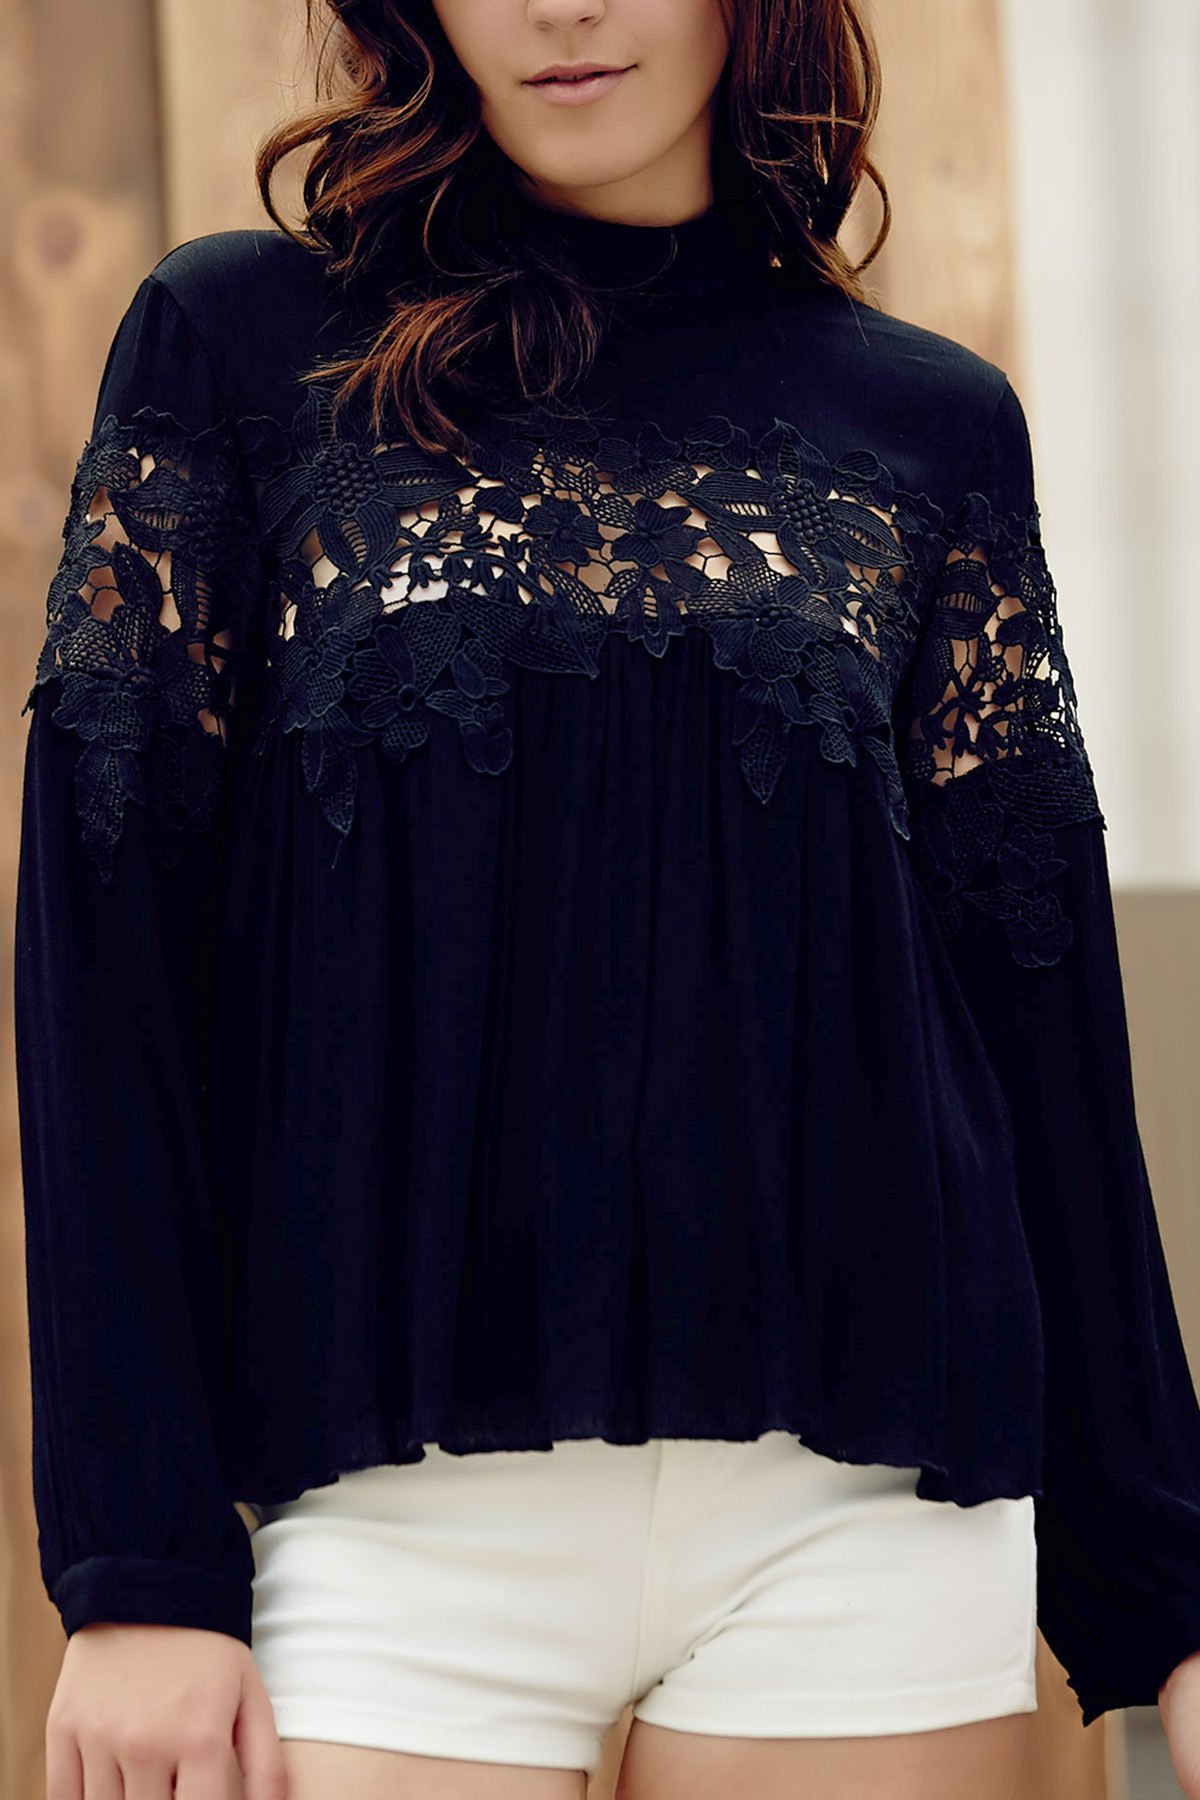 Lace Spliced Stand Collar Long Sleeve Black Blouse 171264305